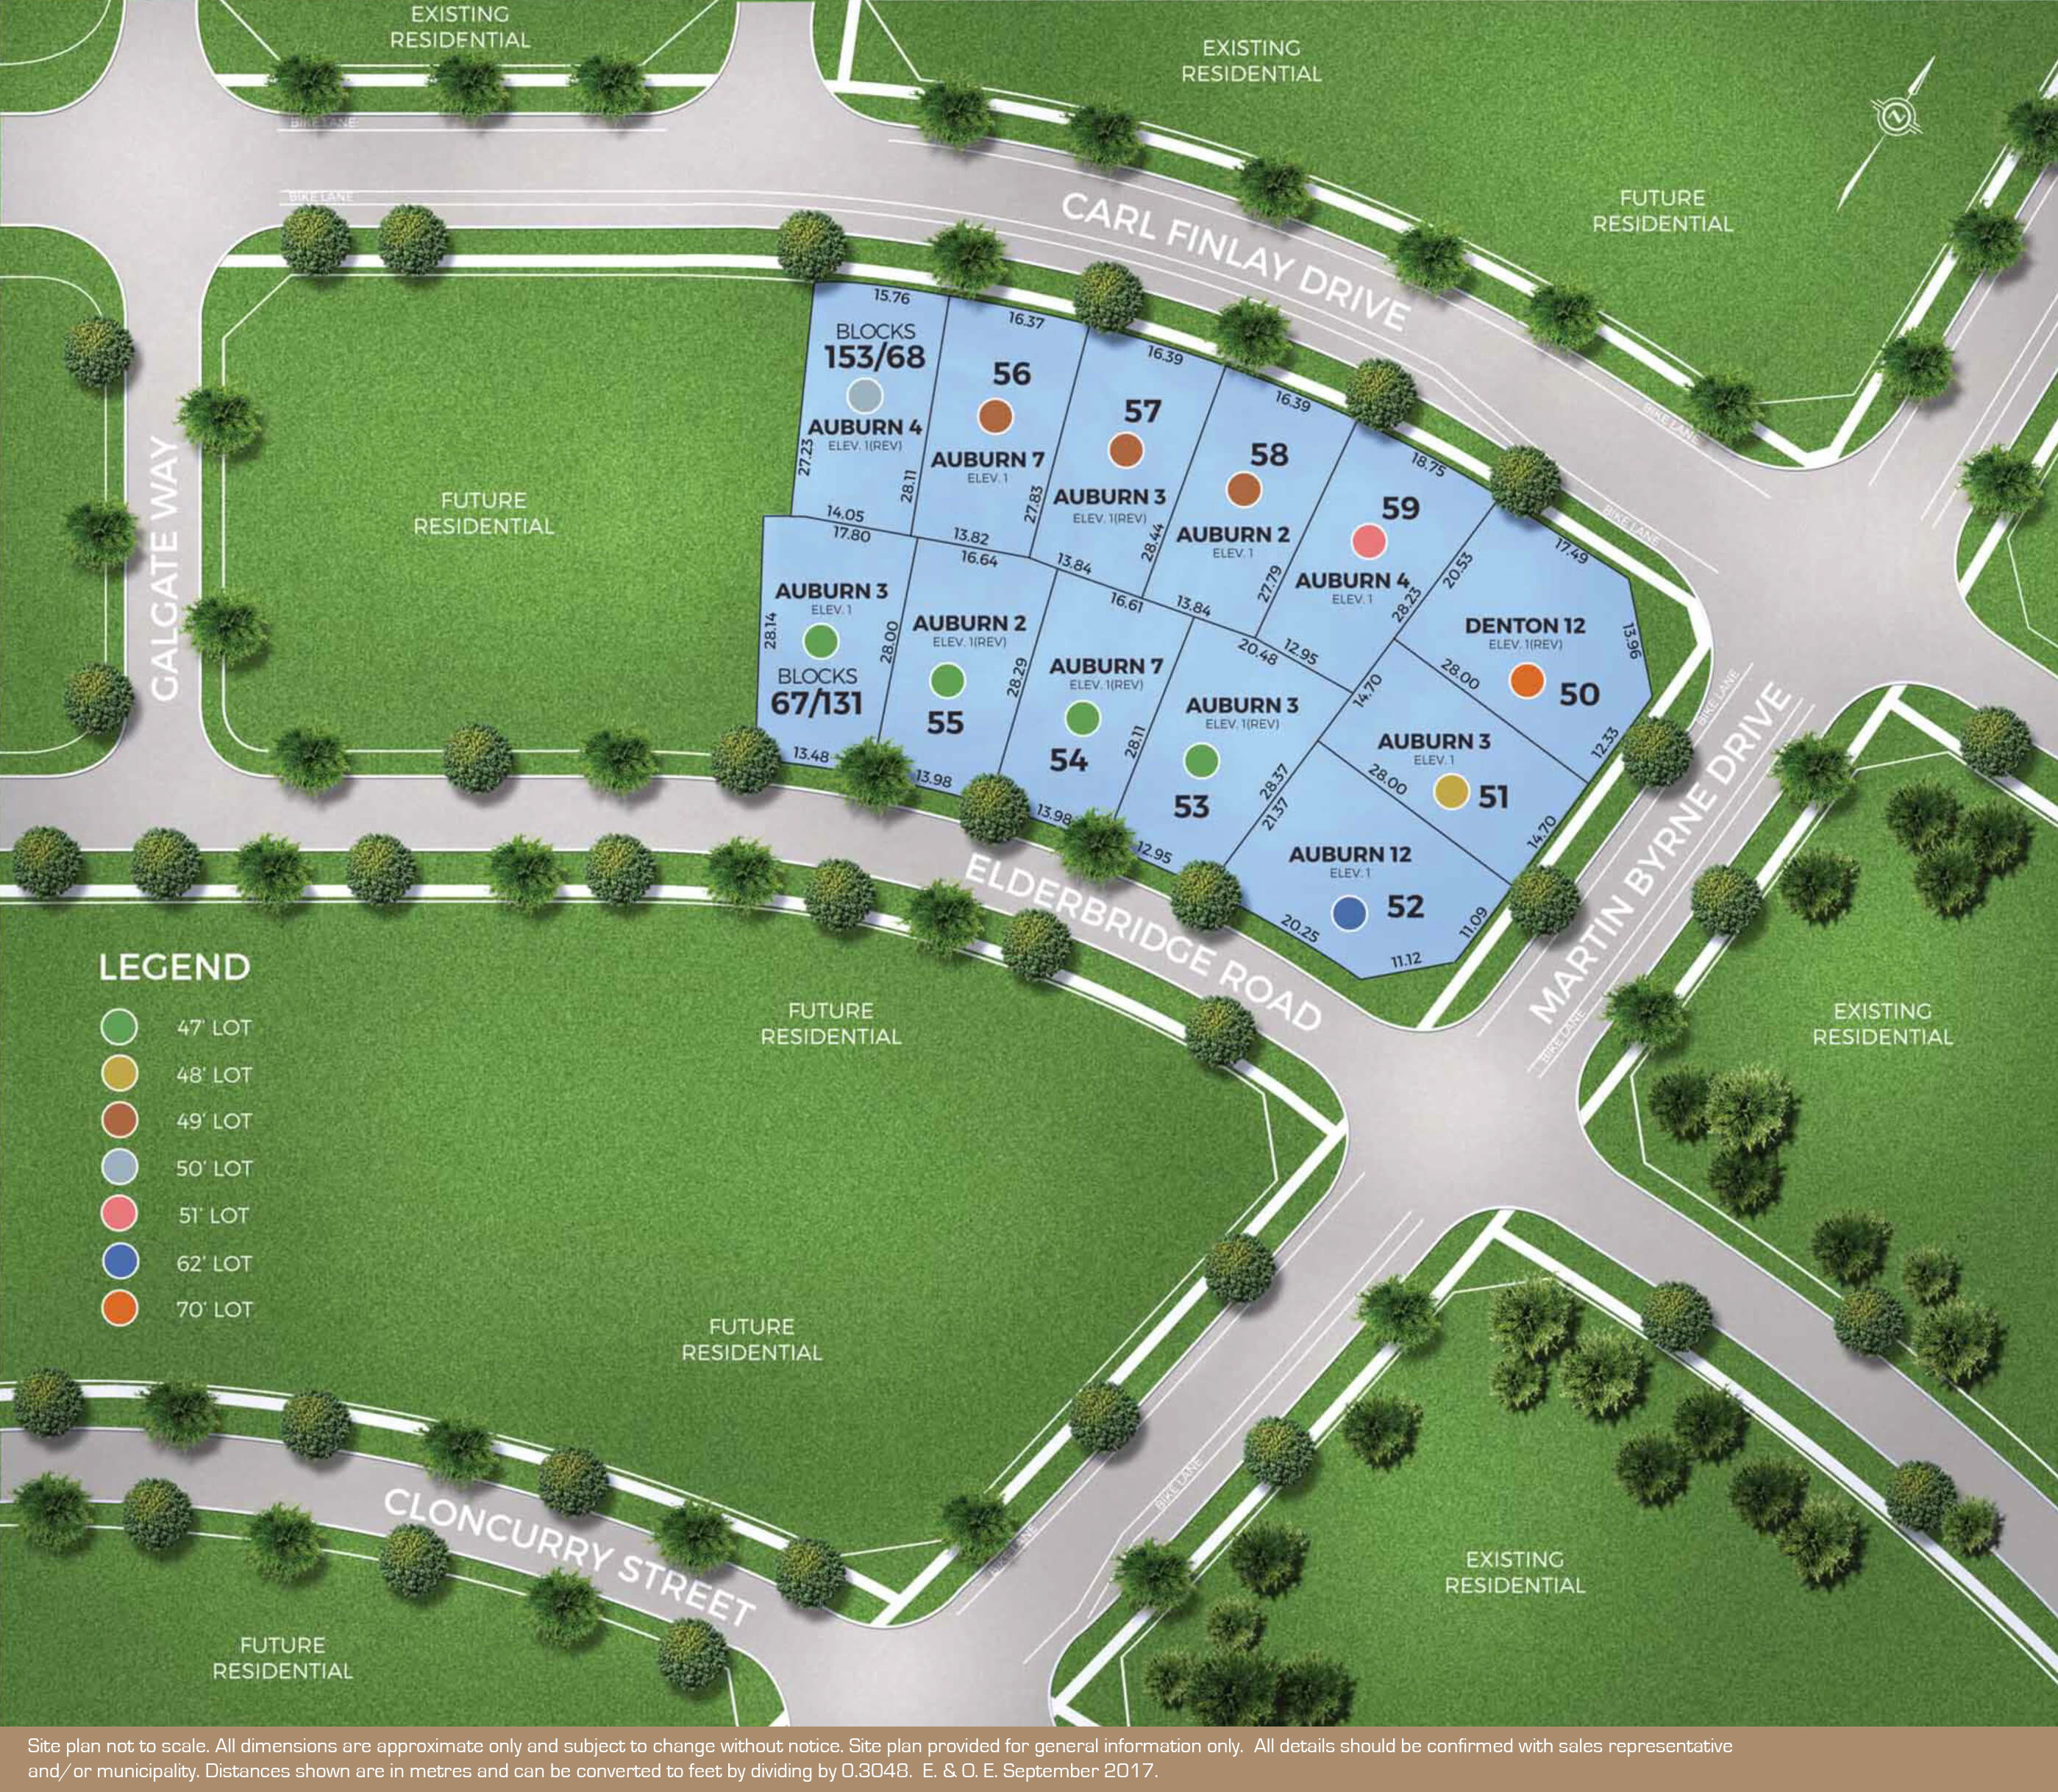 The Reserve Siteplan